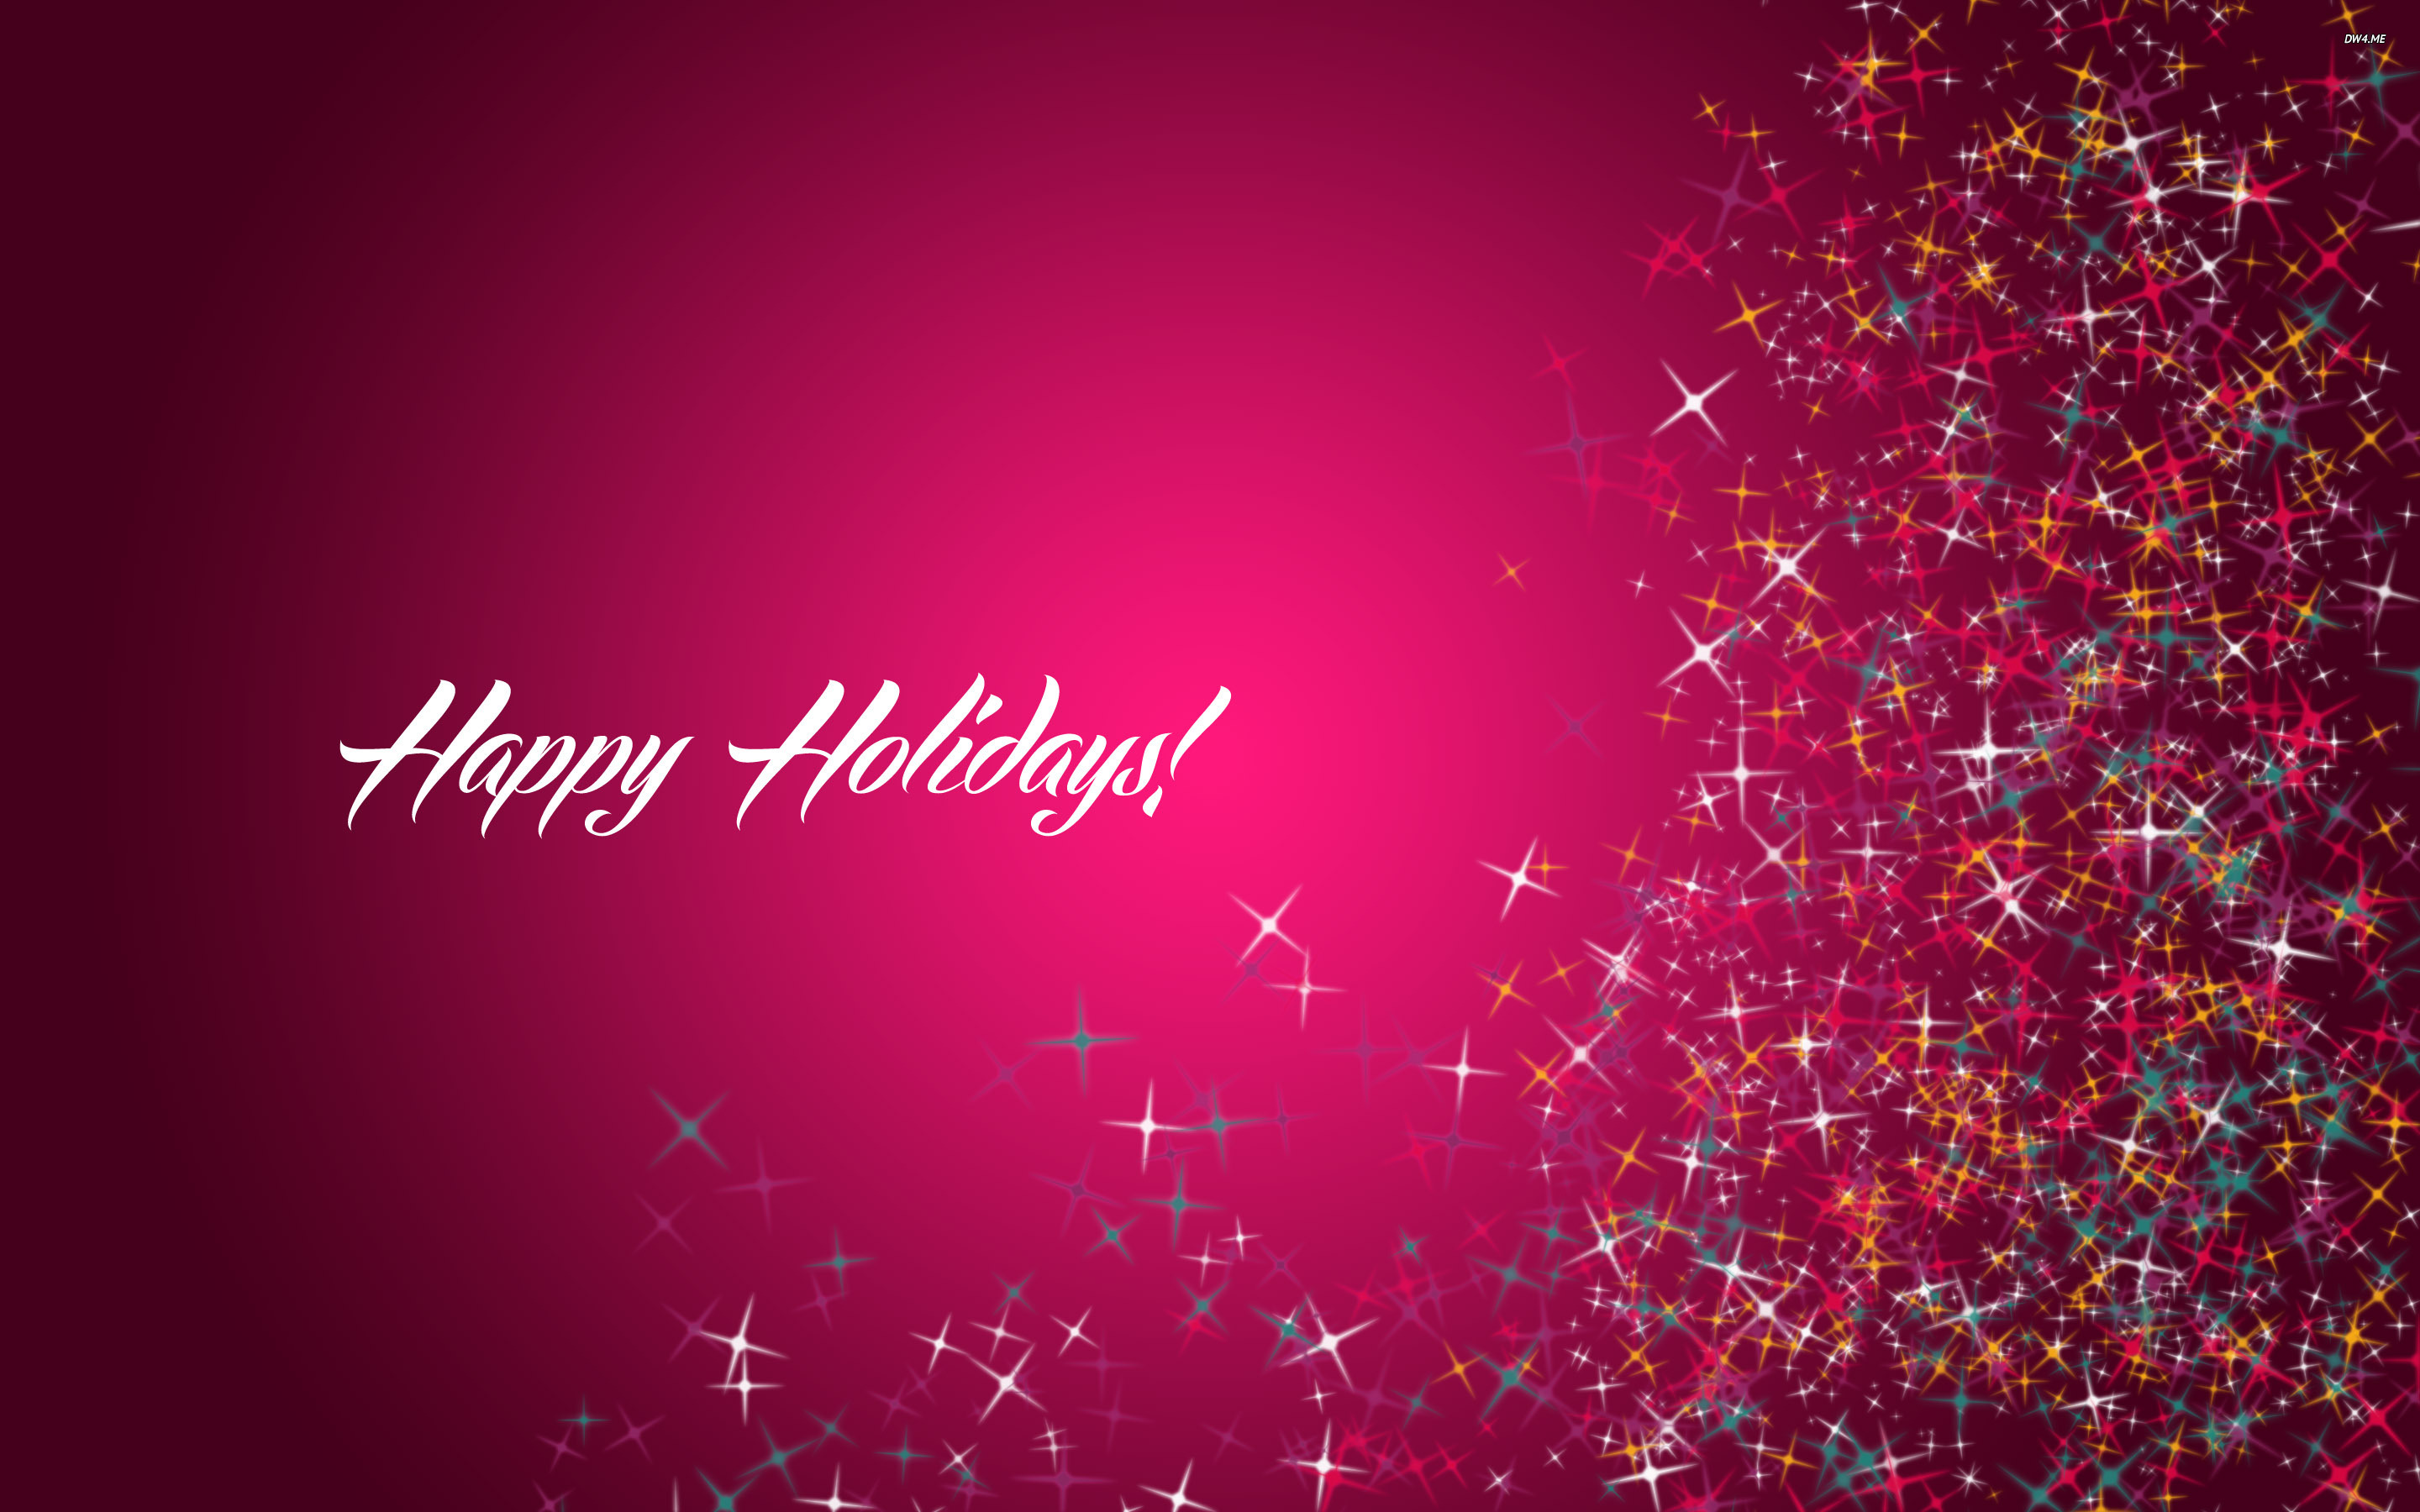 Holiday Desktop Wallpapers - WallpaperSafari